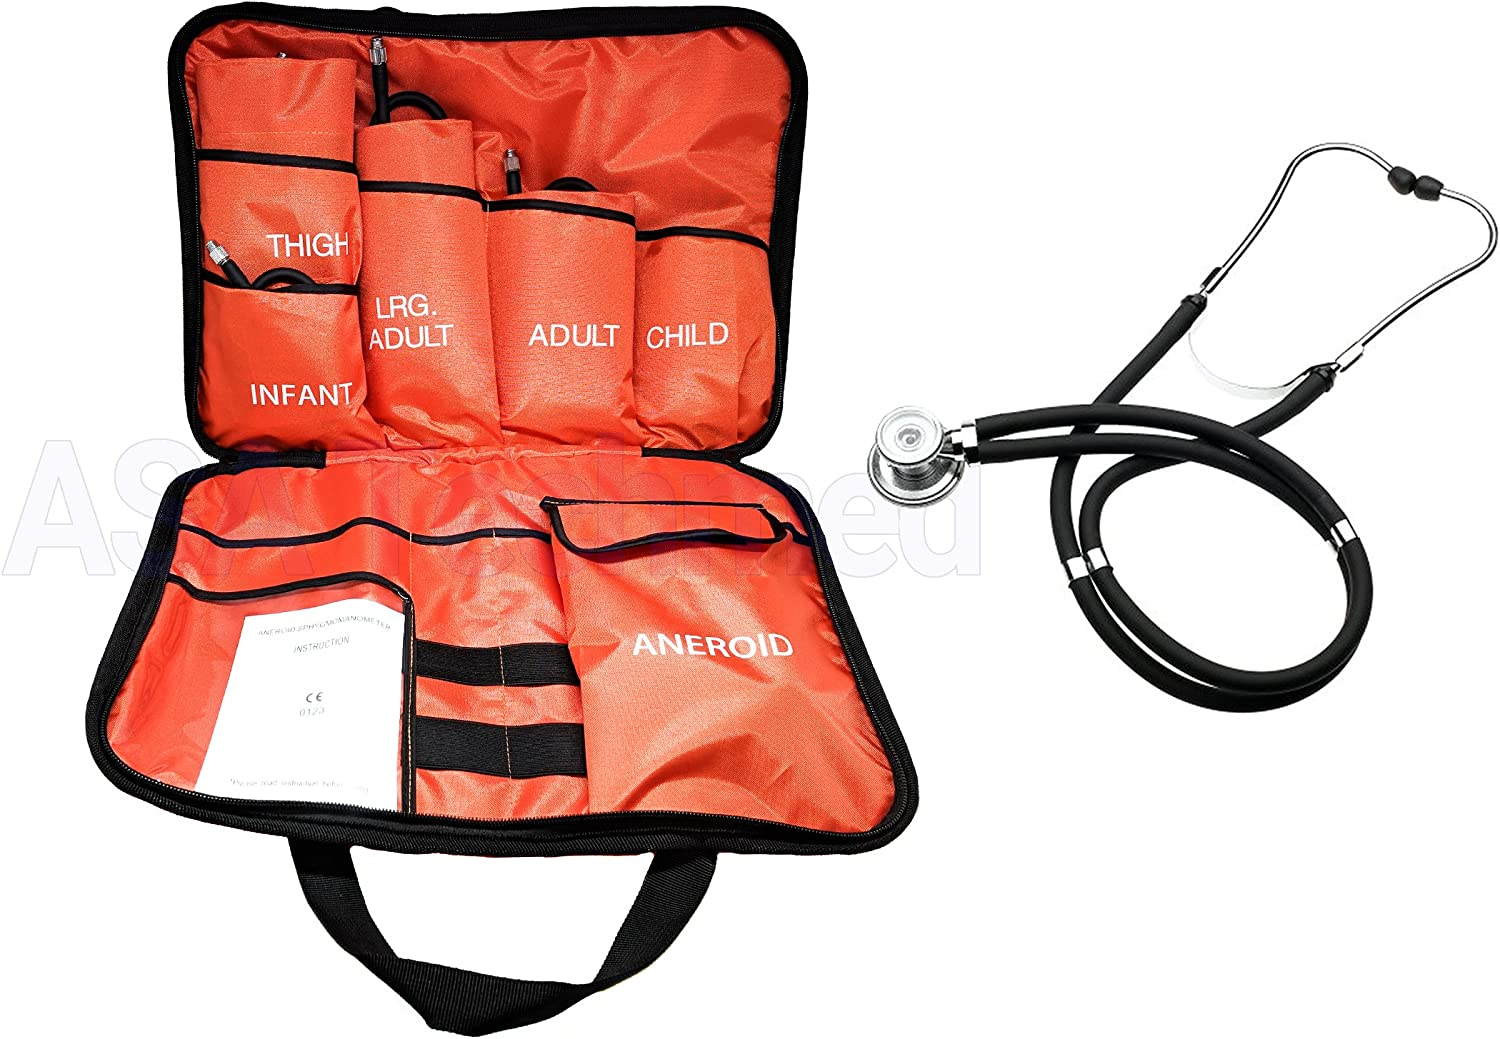 5 Cuffs Blood Pressure Aneroid Sphygmomanometer Cuff System + Black Stethoscope for Infant, Child, Adult, Large Adult, Thigh - EMTs, Paramedics, Nurses, Doctors, Students